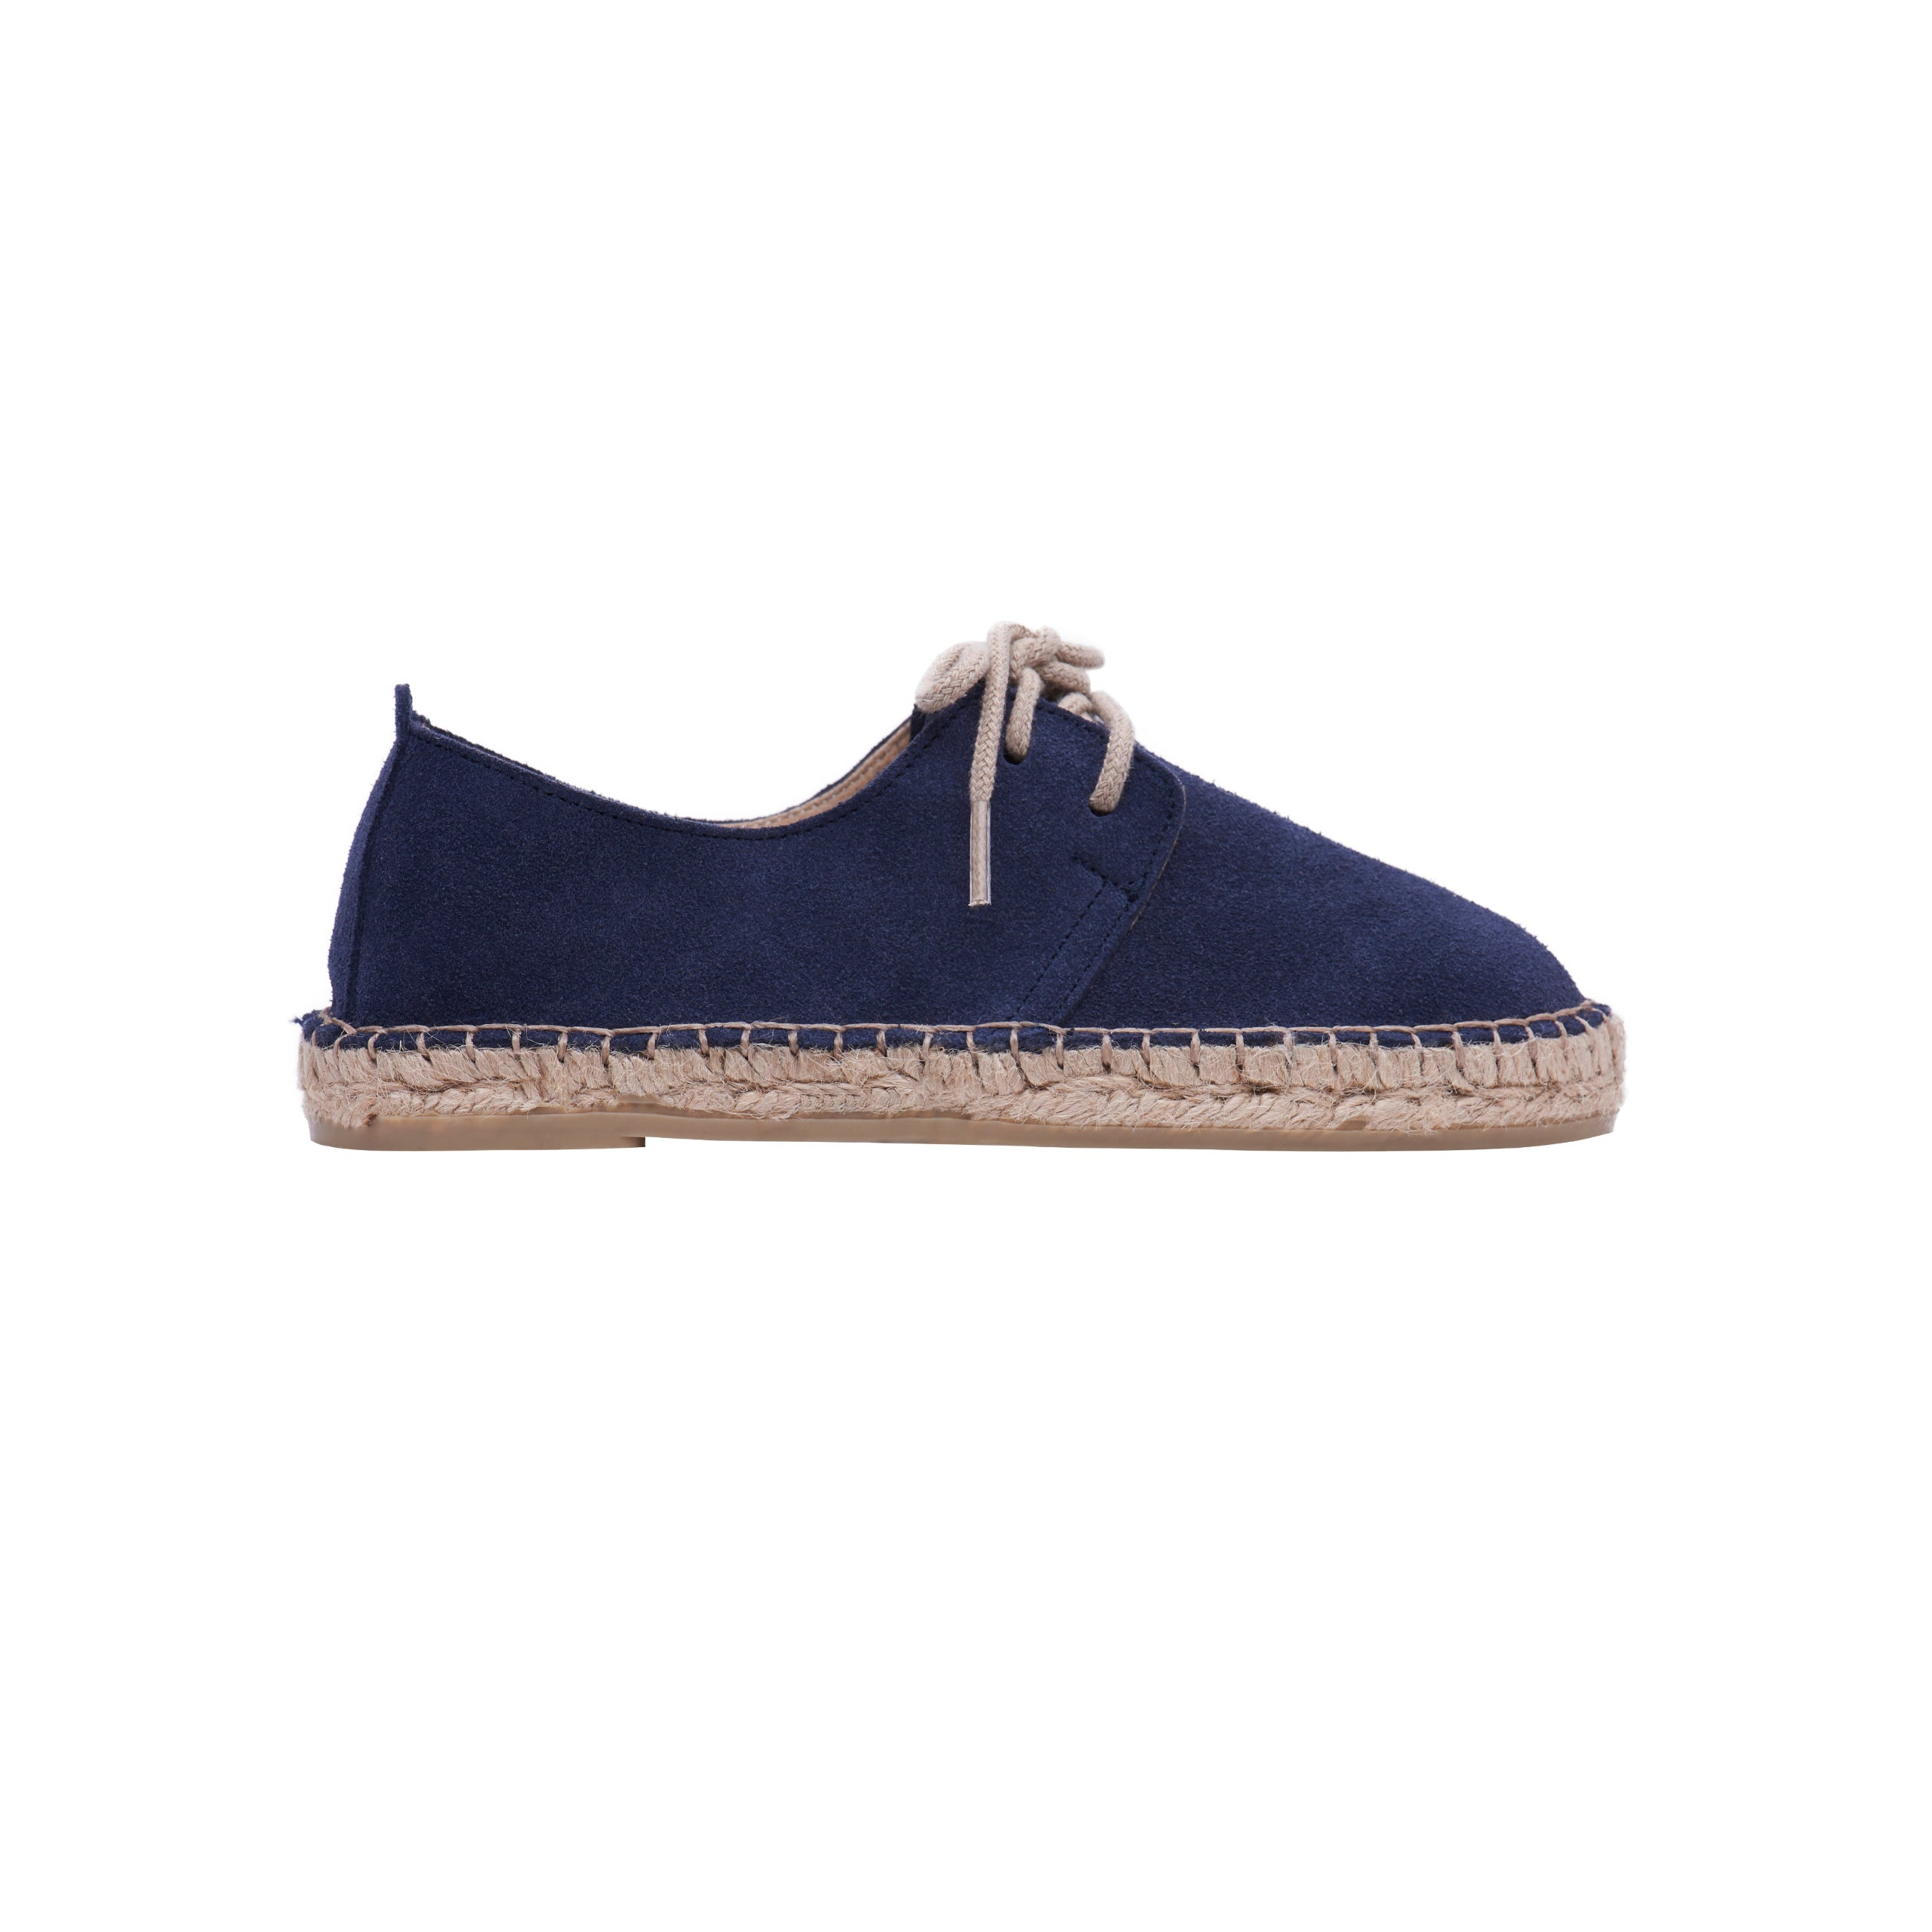 Spanish kids handmade espadrilles available online and in Singapore